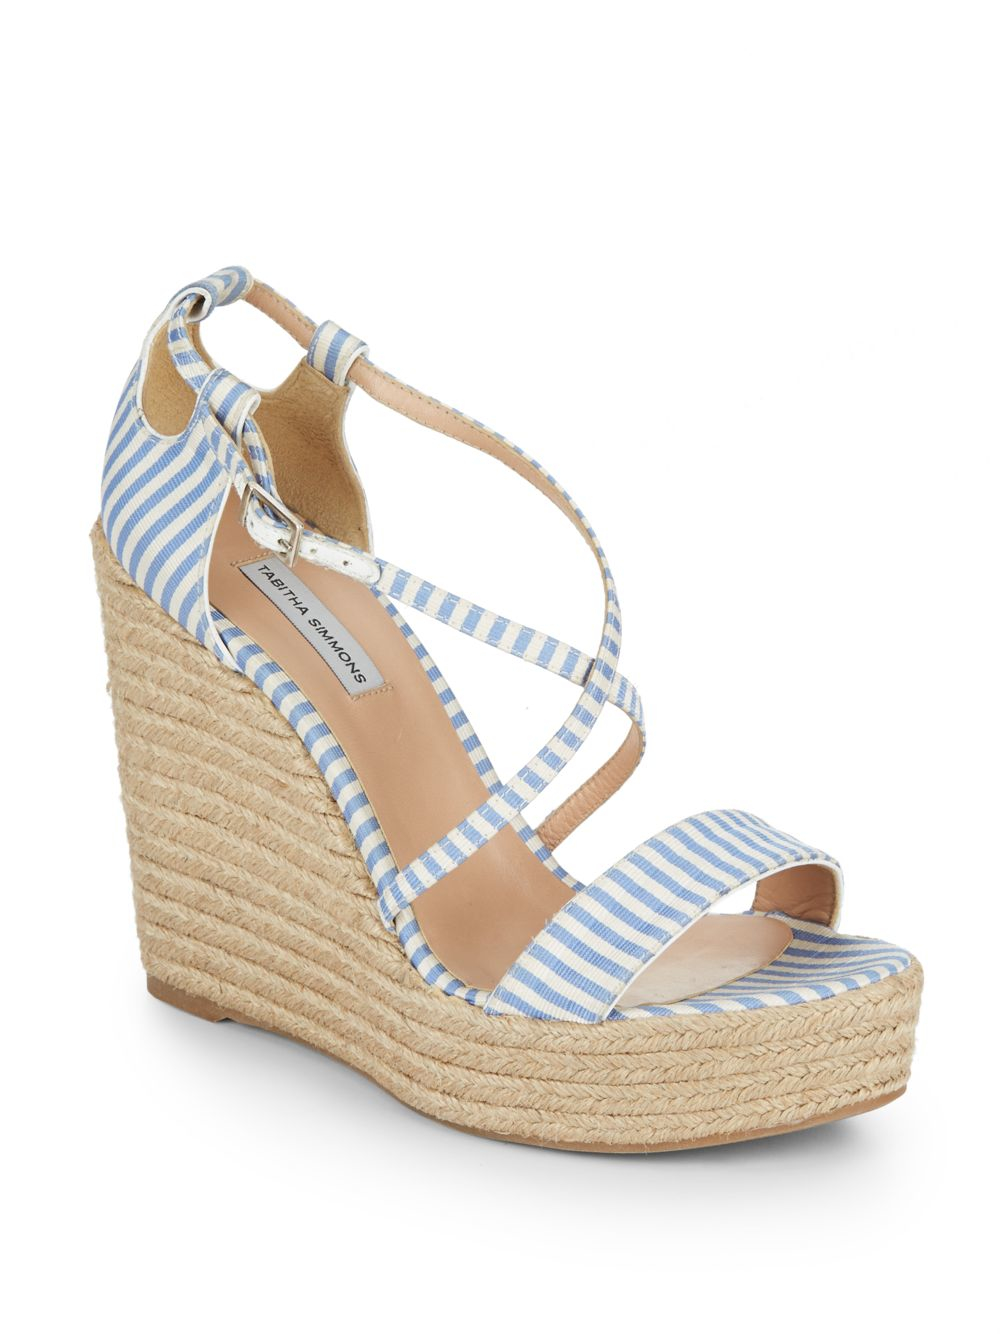 simmons striped espadrille wedge sandals in